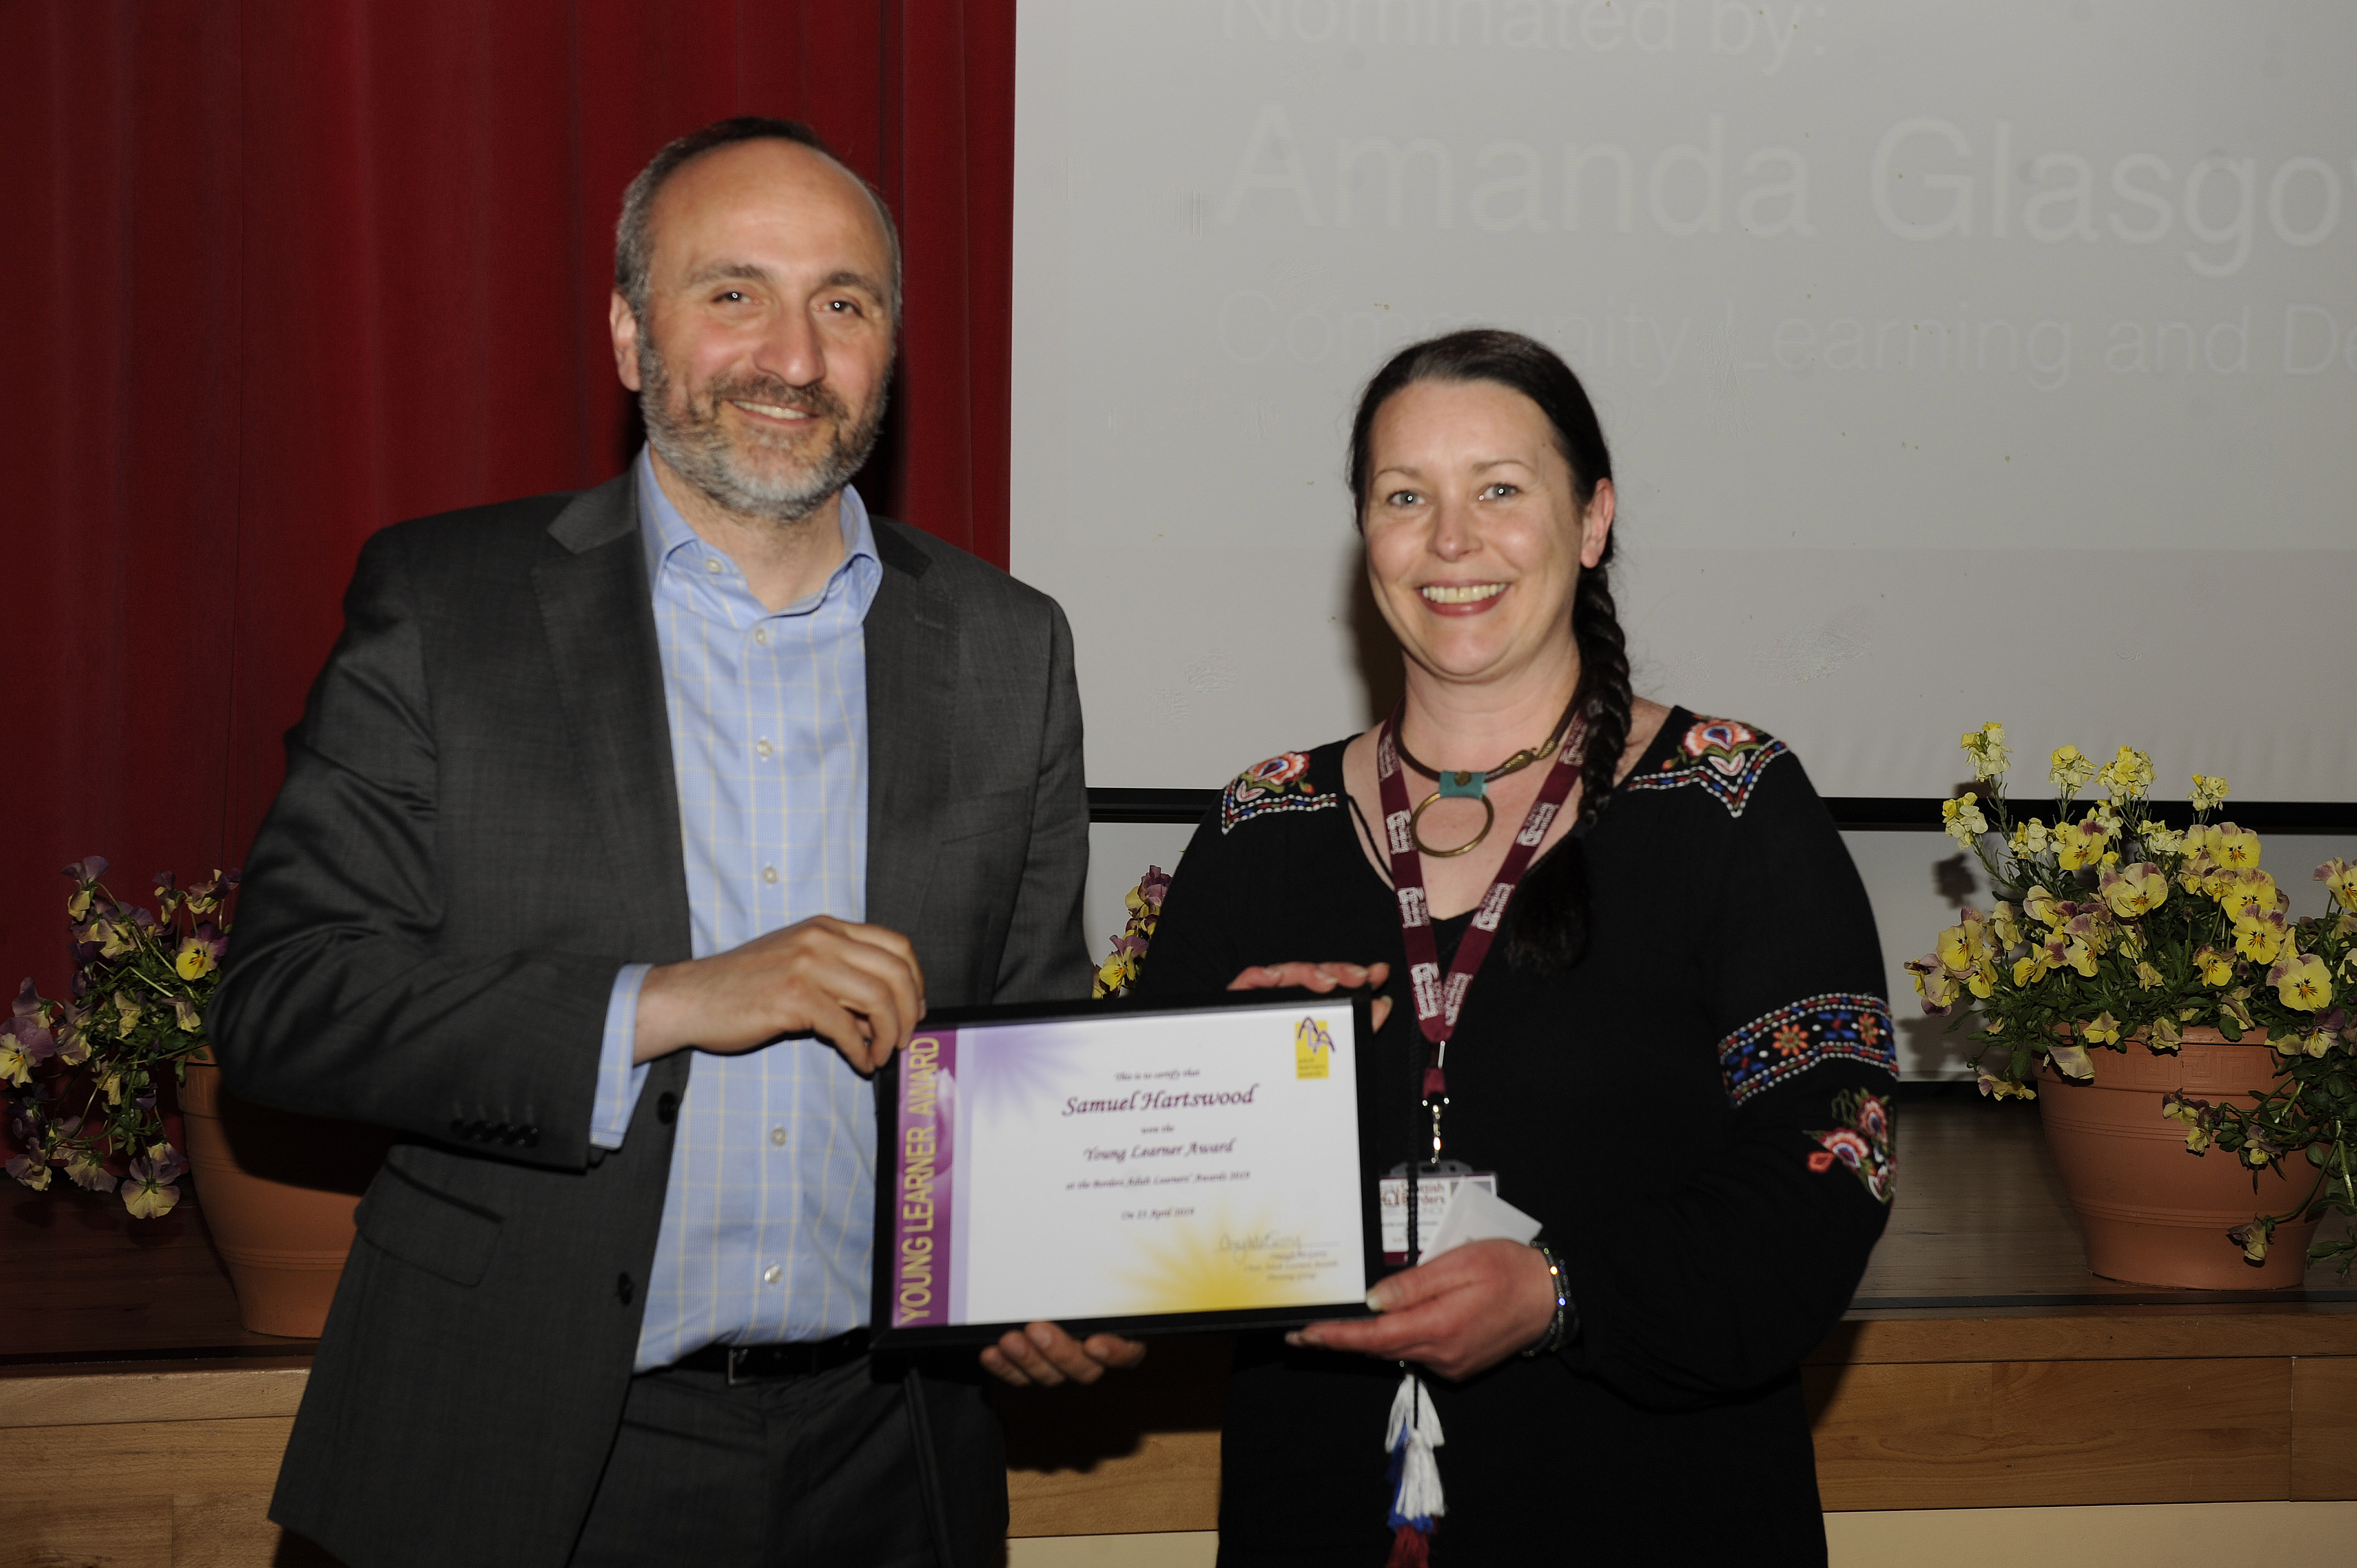 Eildon proud to support Borders Adult Learner Awards